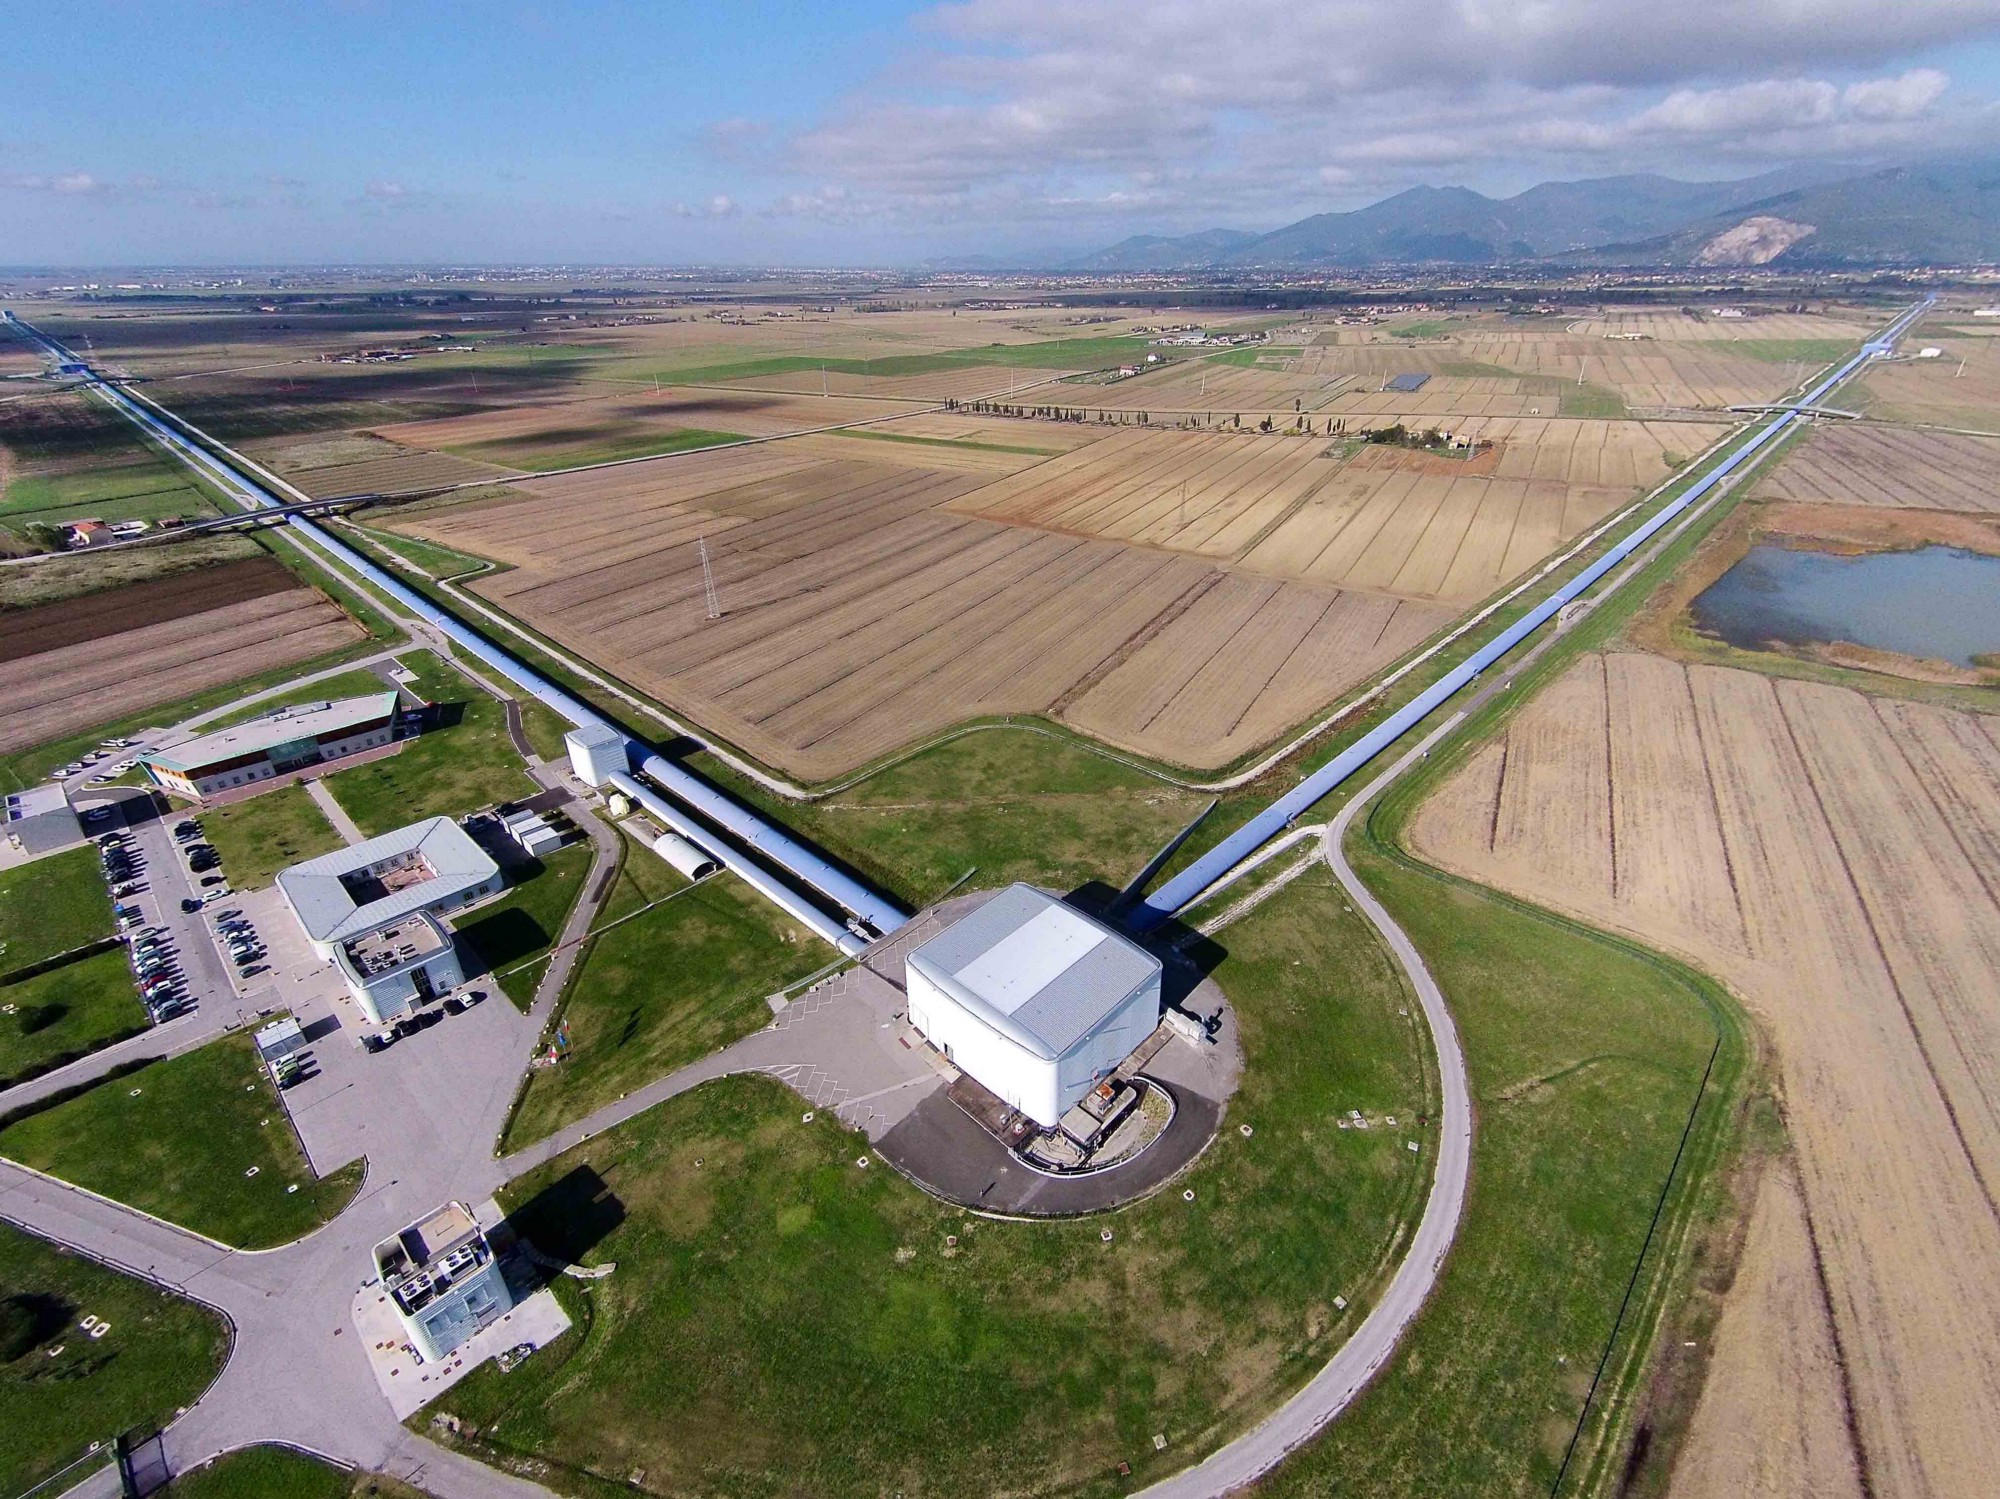 The VIRGO observatory in Italy has ultra-sensitive detection and measuring equipment to spot gravitational waves. Image credit – 'VirgoDetectorAerialView' by The Virgo collaboration is in the public domain